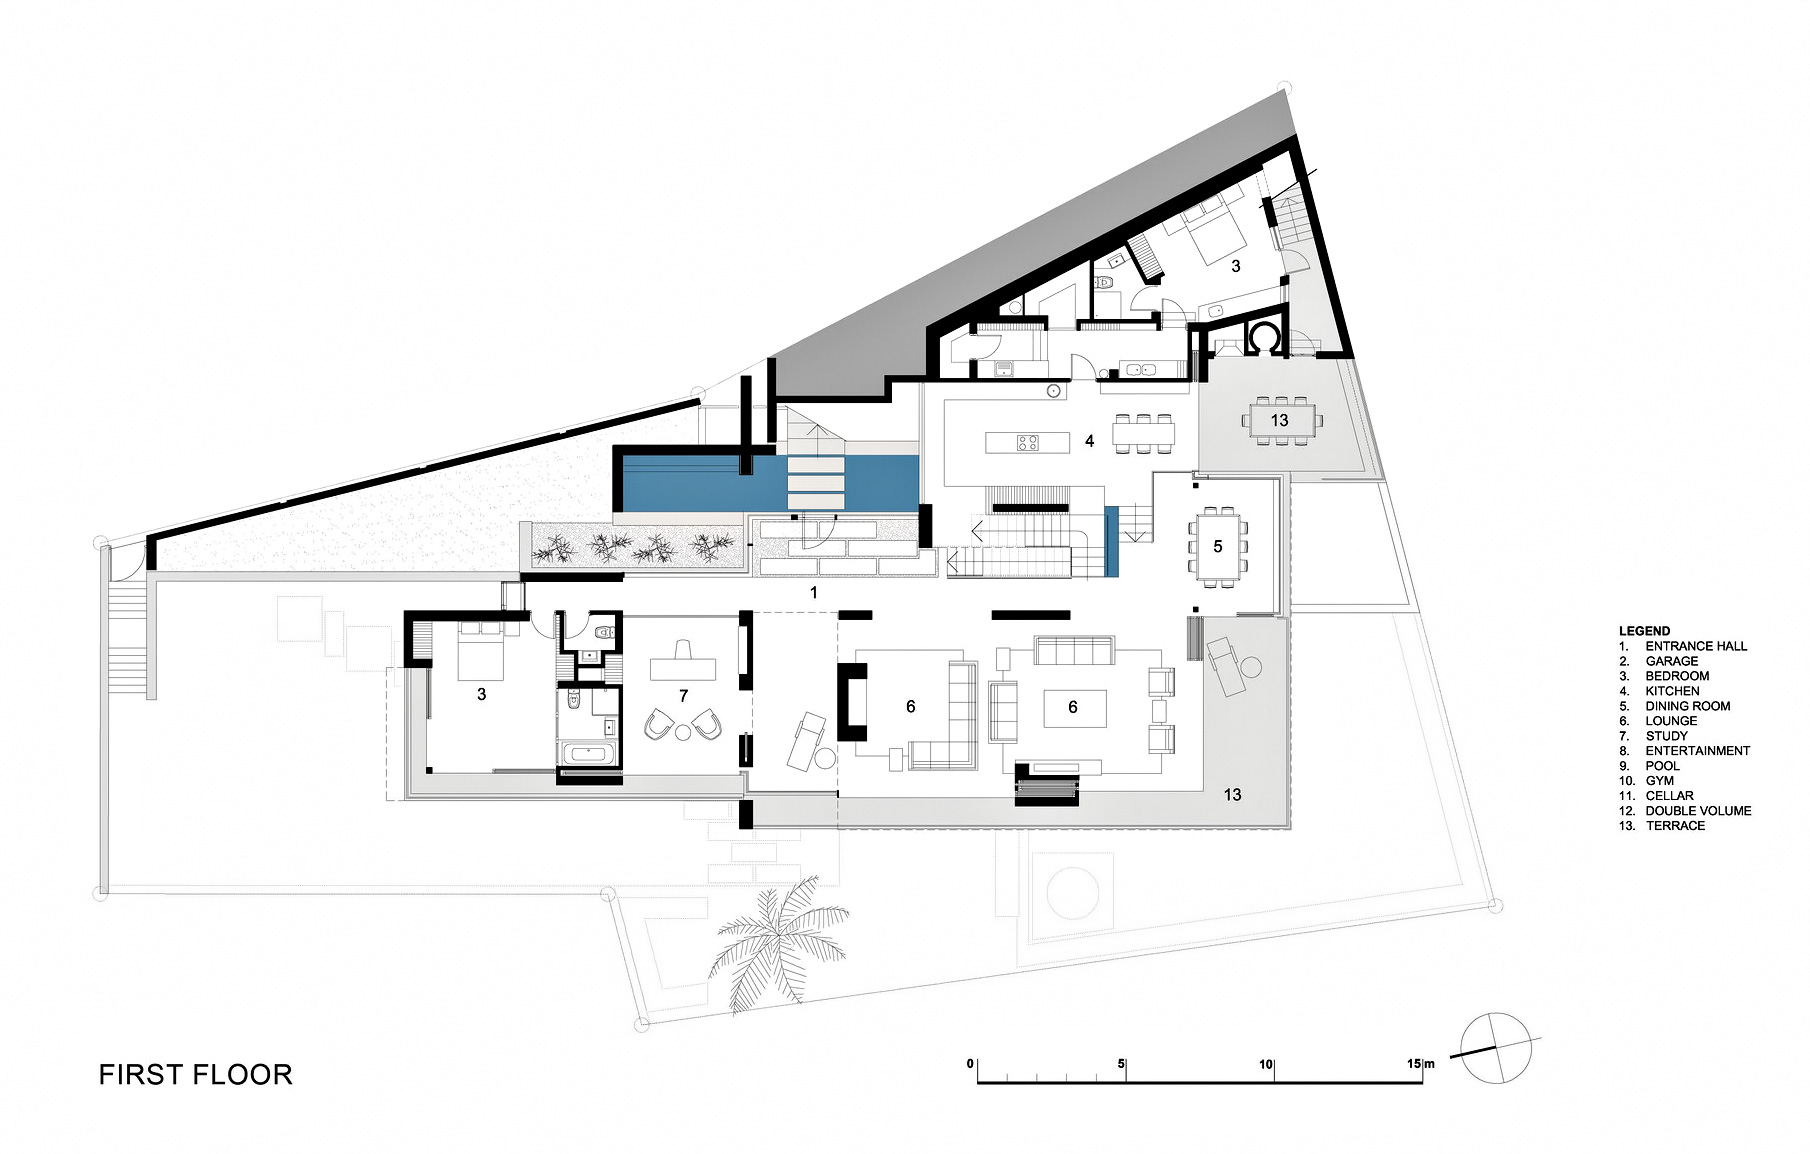 First Floor Plan - St. Leon 10 Residence - Bantry Bay, Cape Town, Western Cape, South Africa